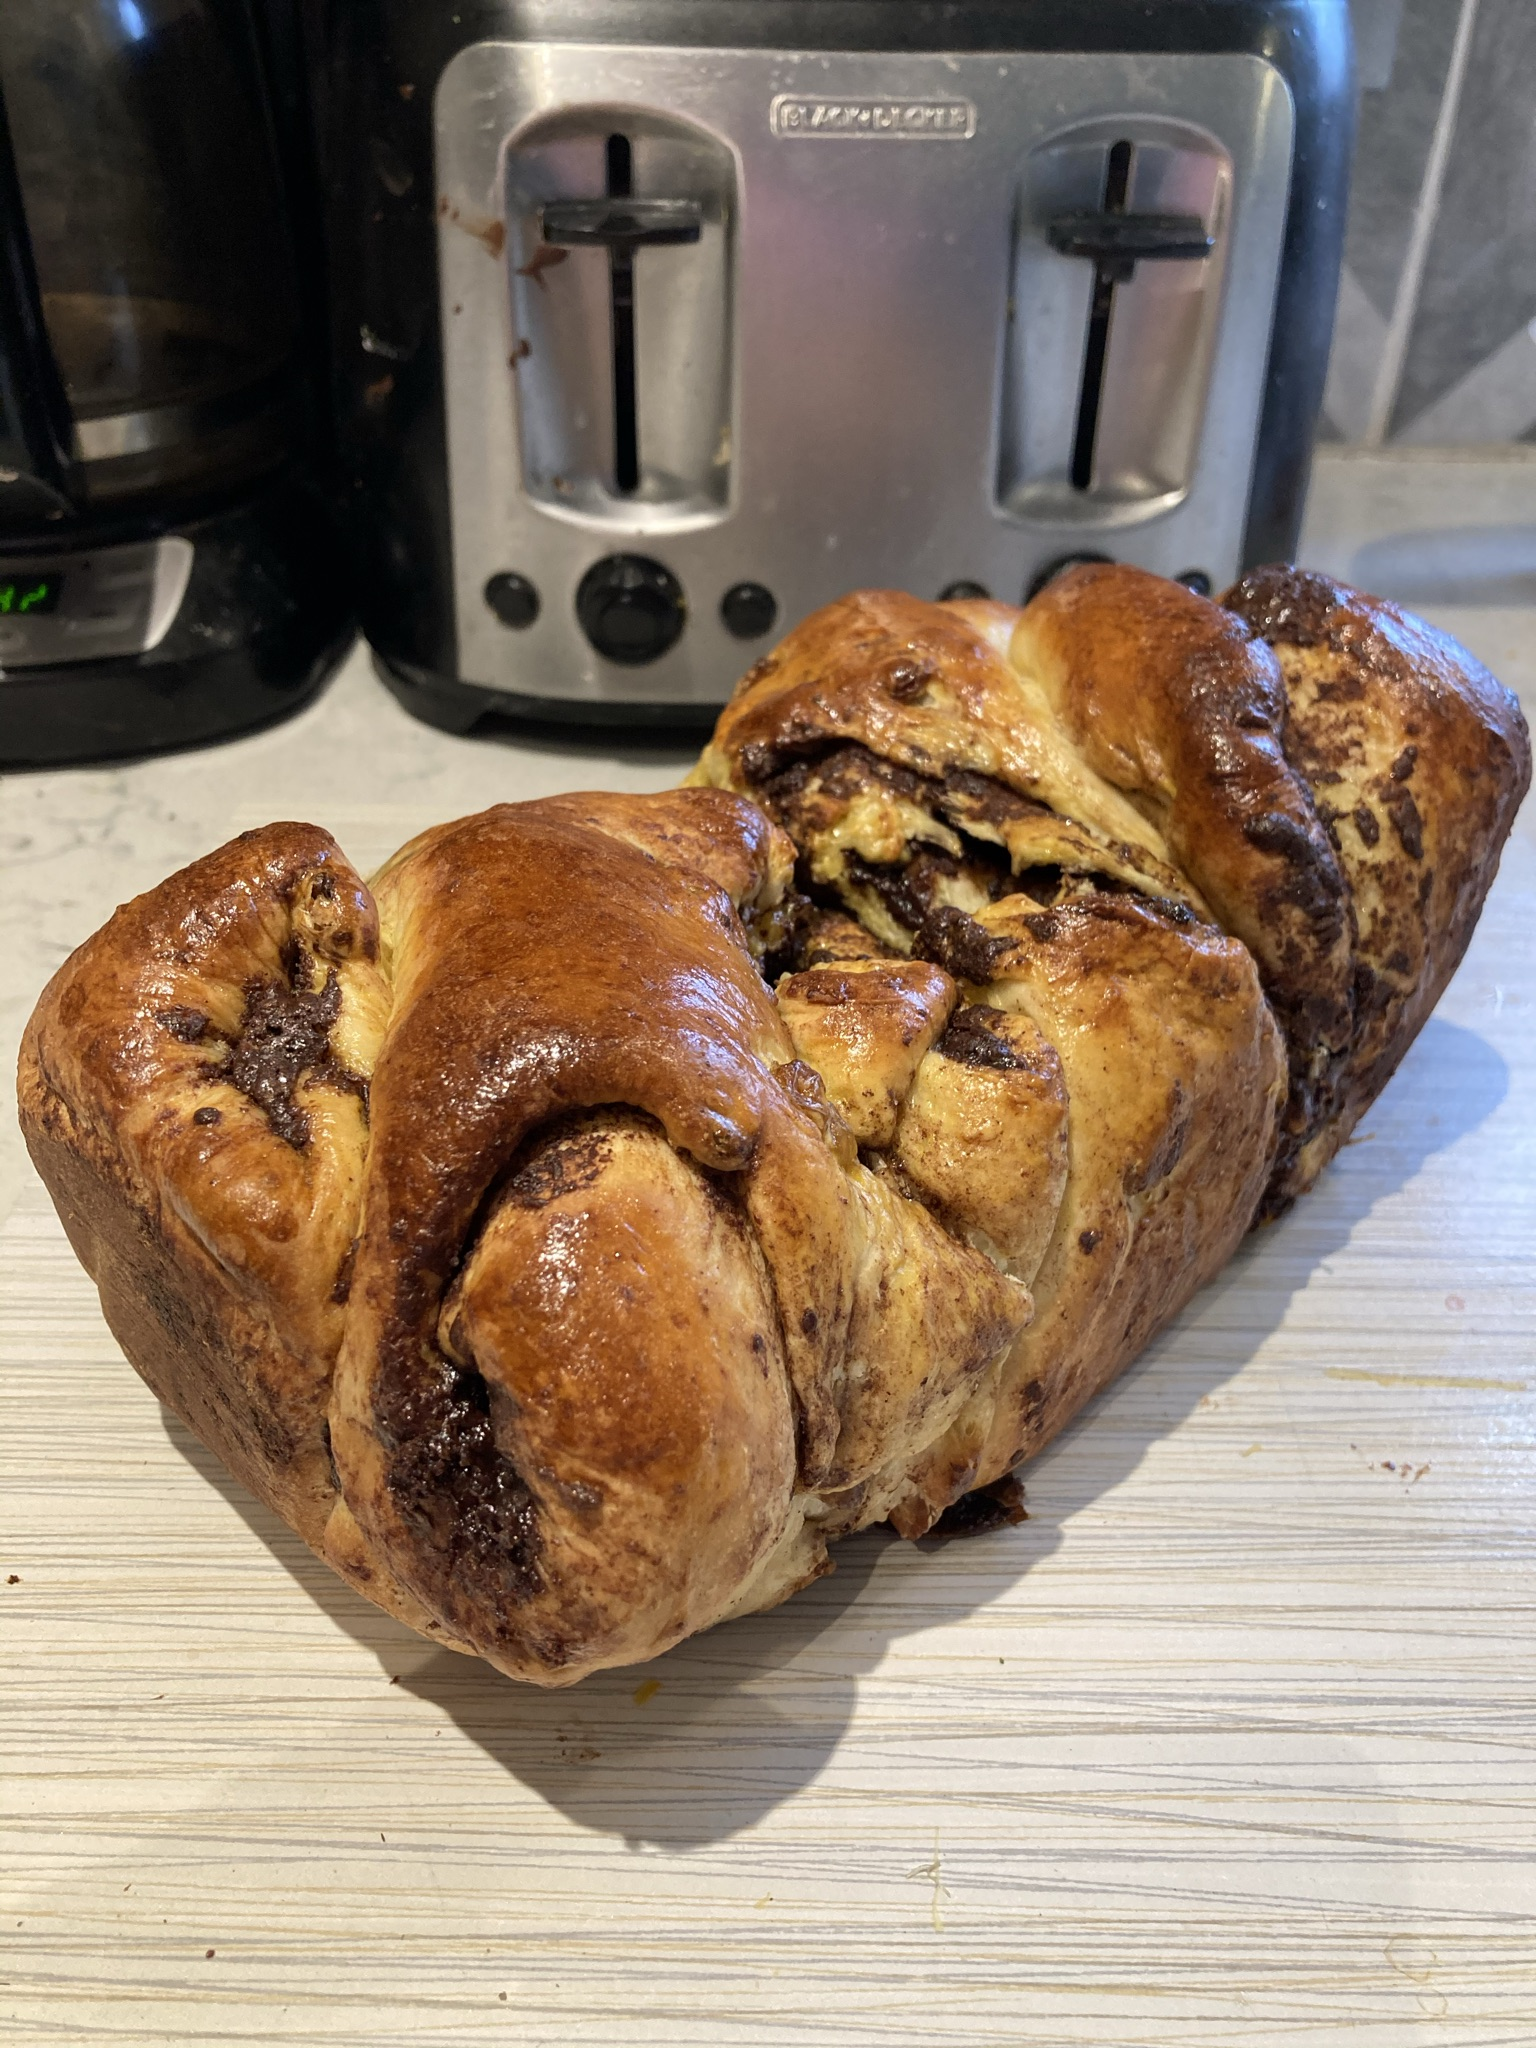 Delicious raisin bread